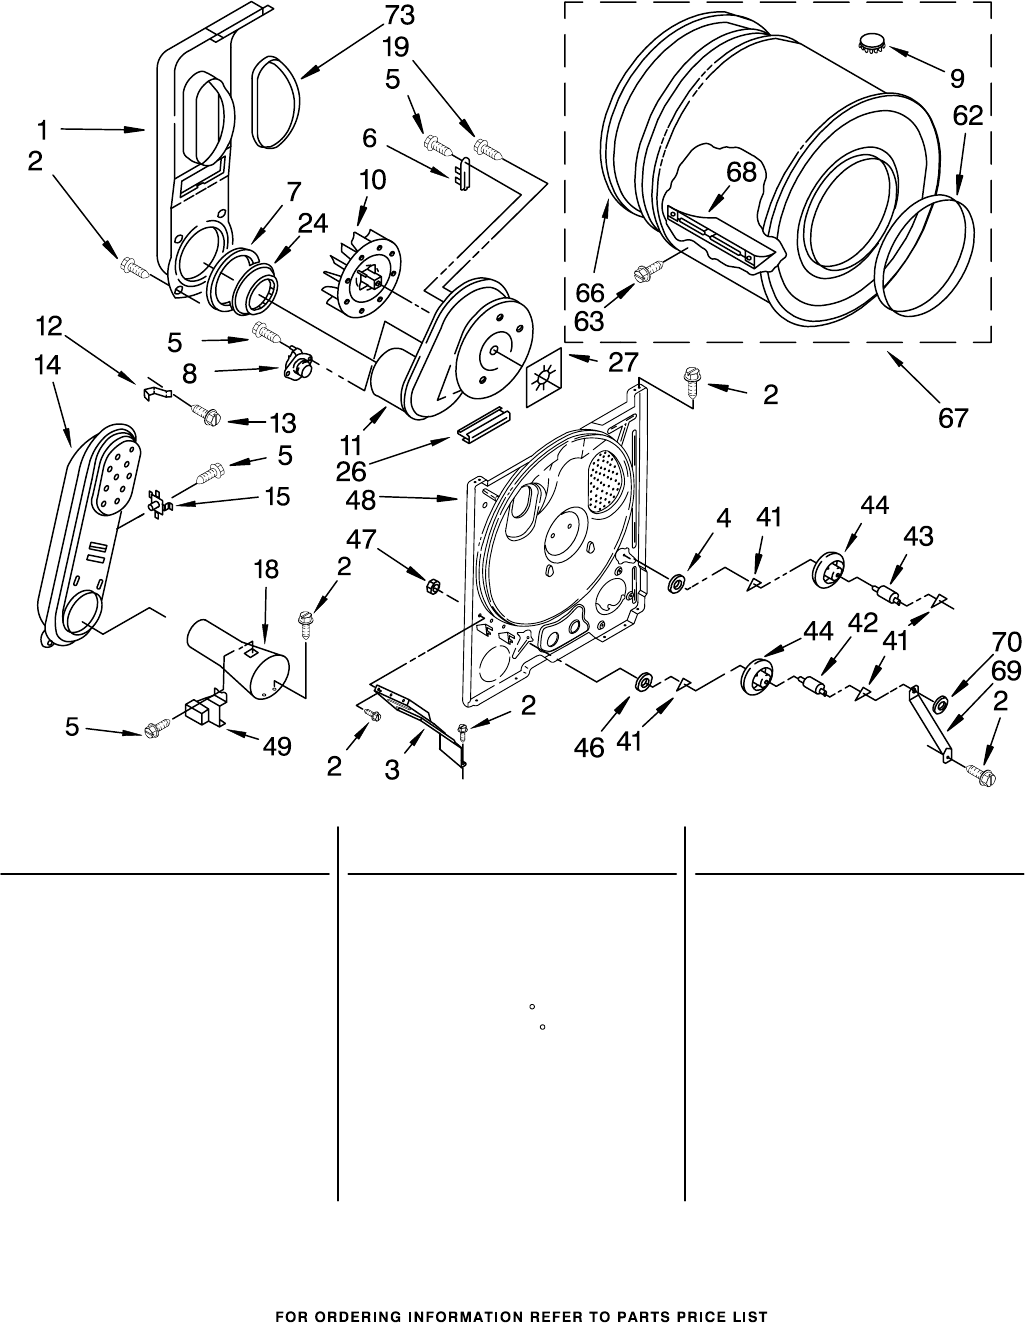 Page 7 of Whirlpool Clothes Dryer LGR4634EQ3 User Guide